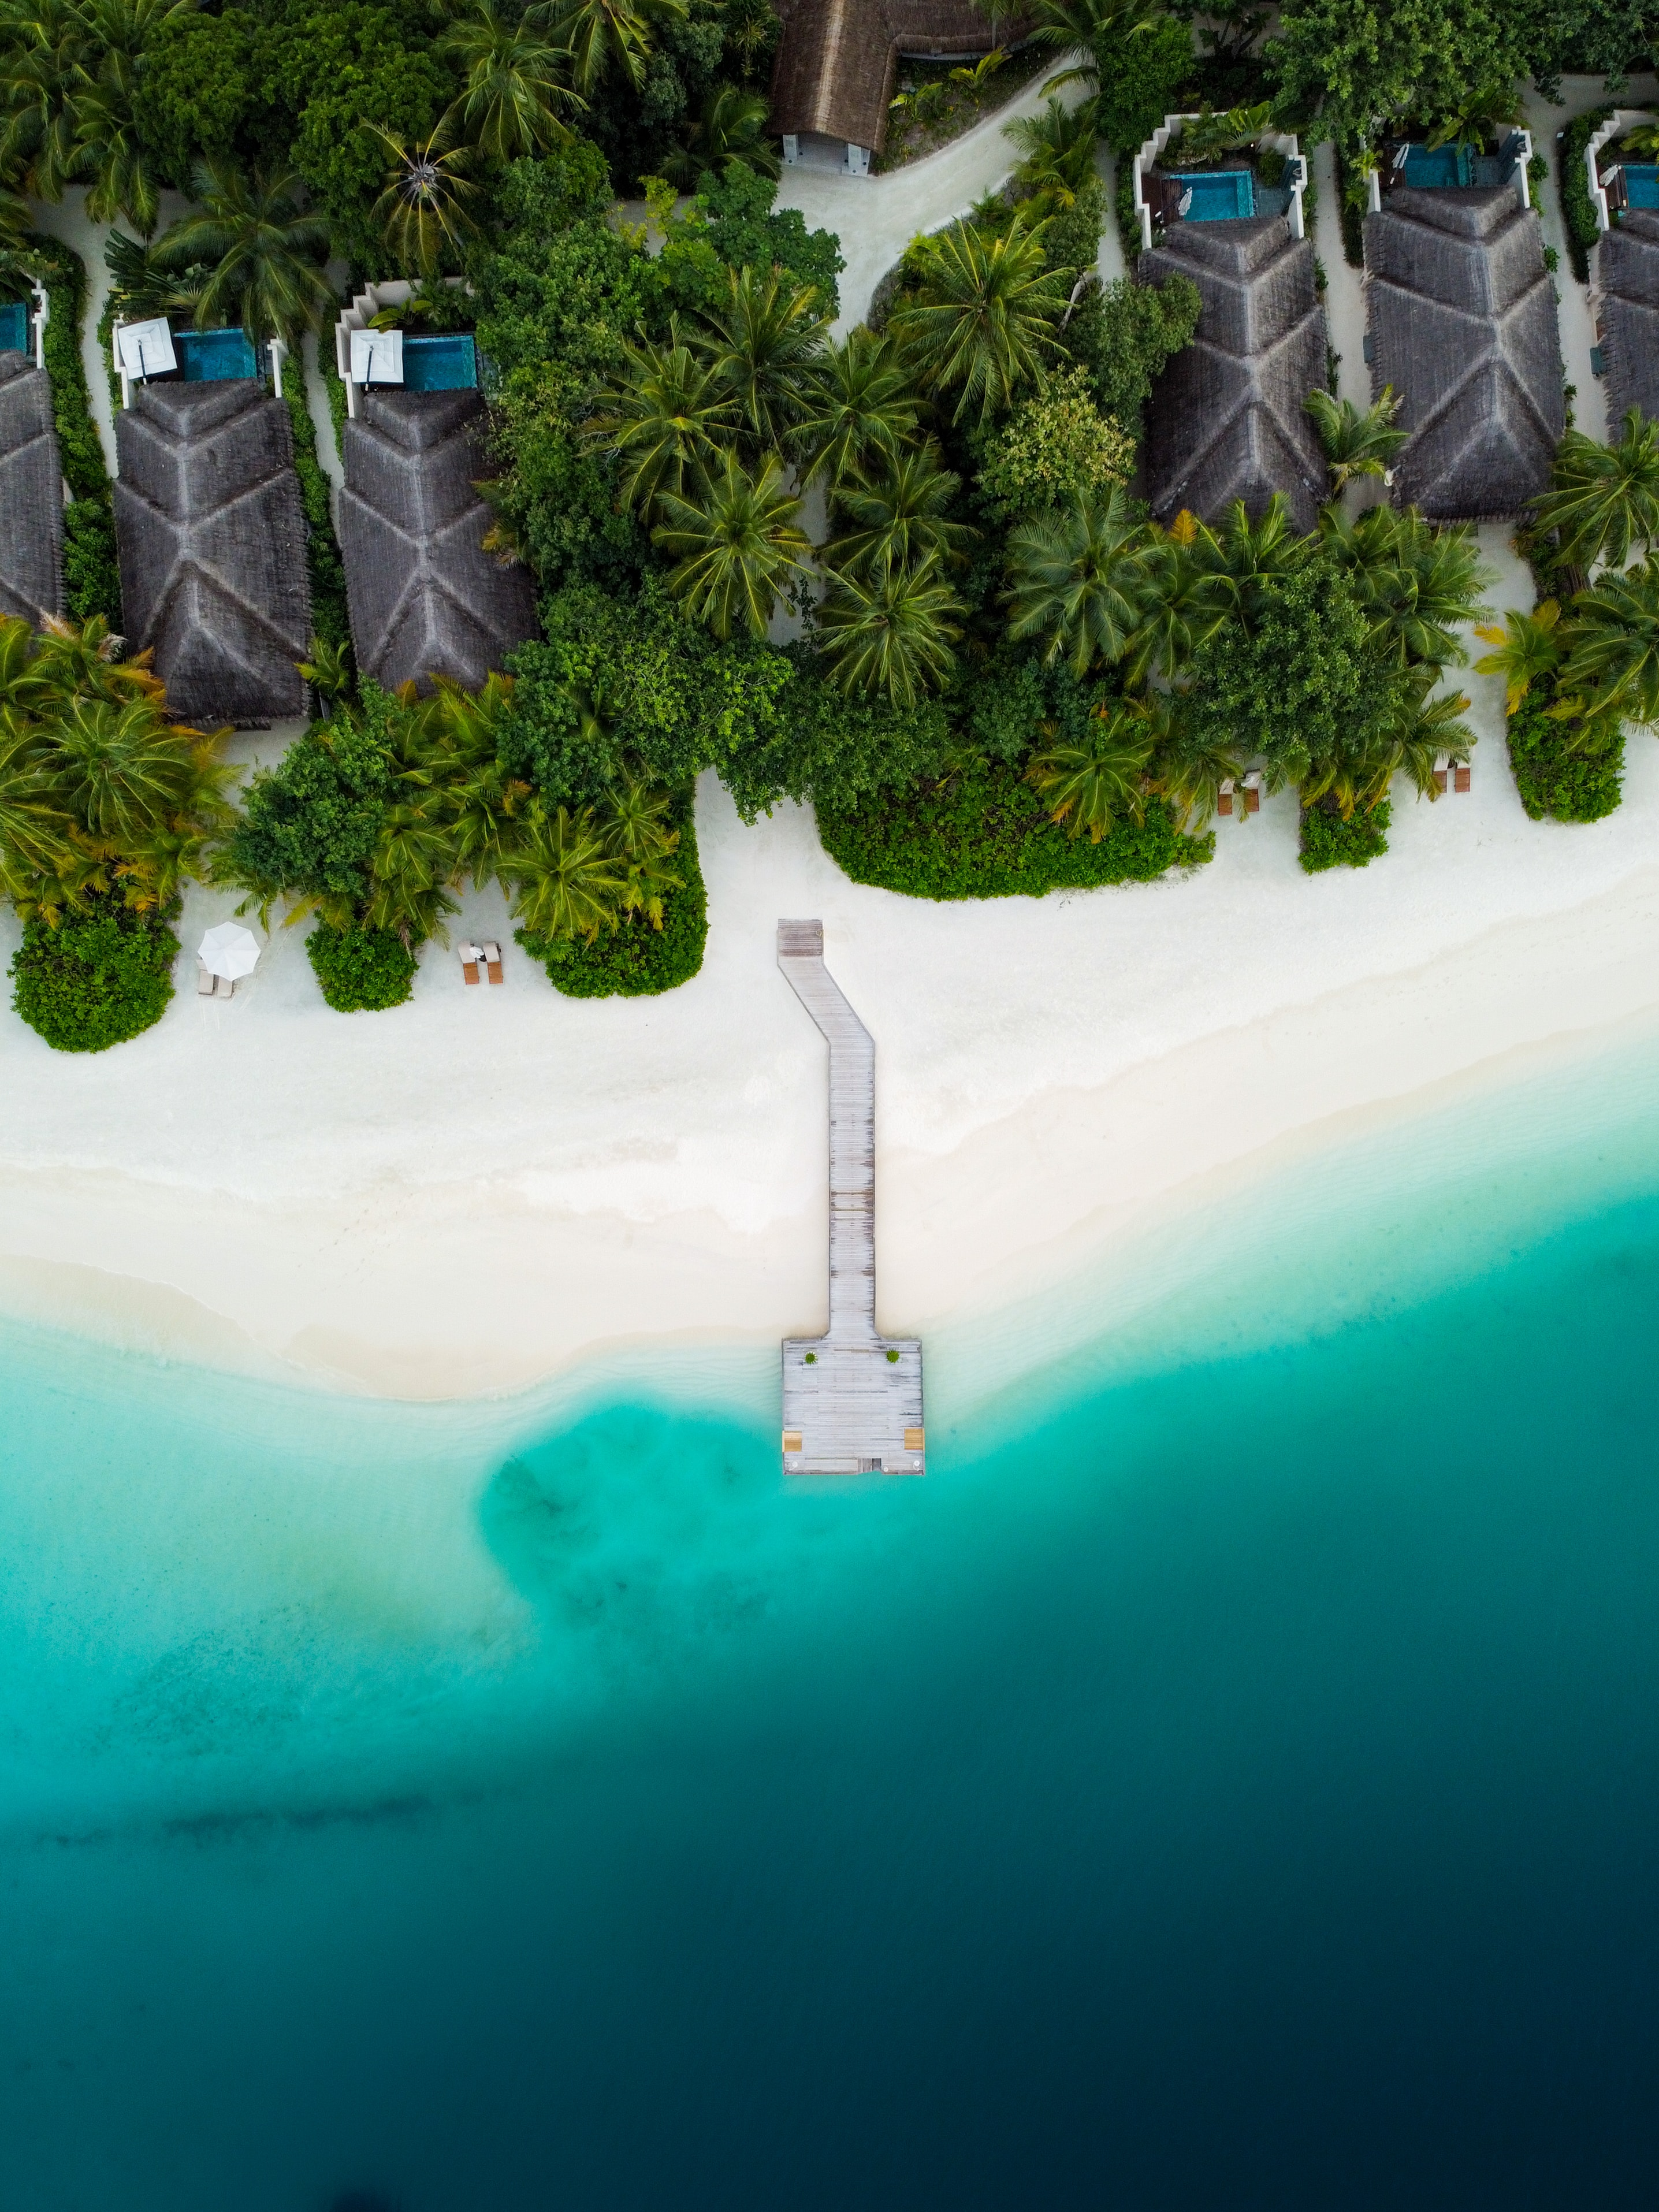 150021 download wallpaper Nature, Beach, Pier, View From Above, Tropics, Palms screensavers and pictures for free